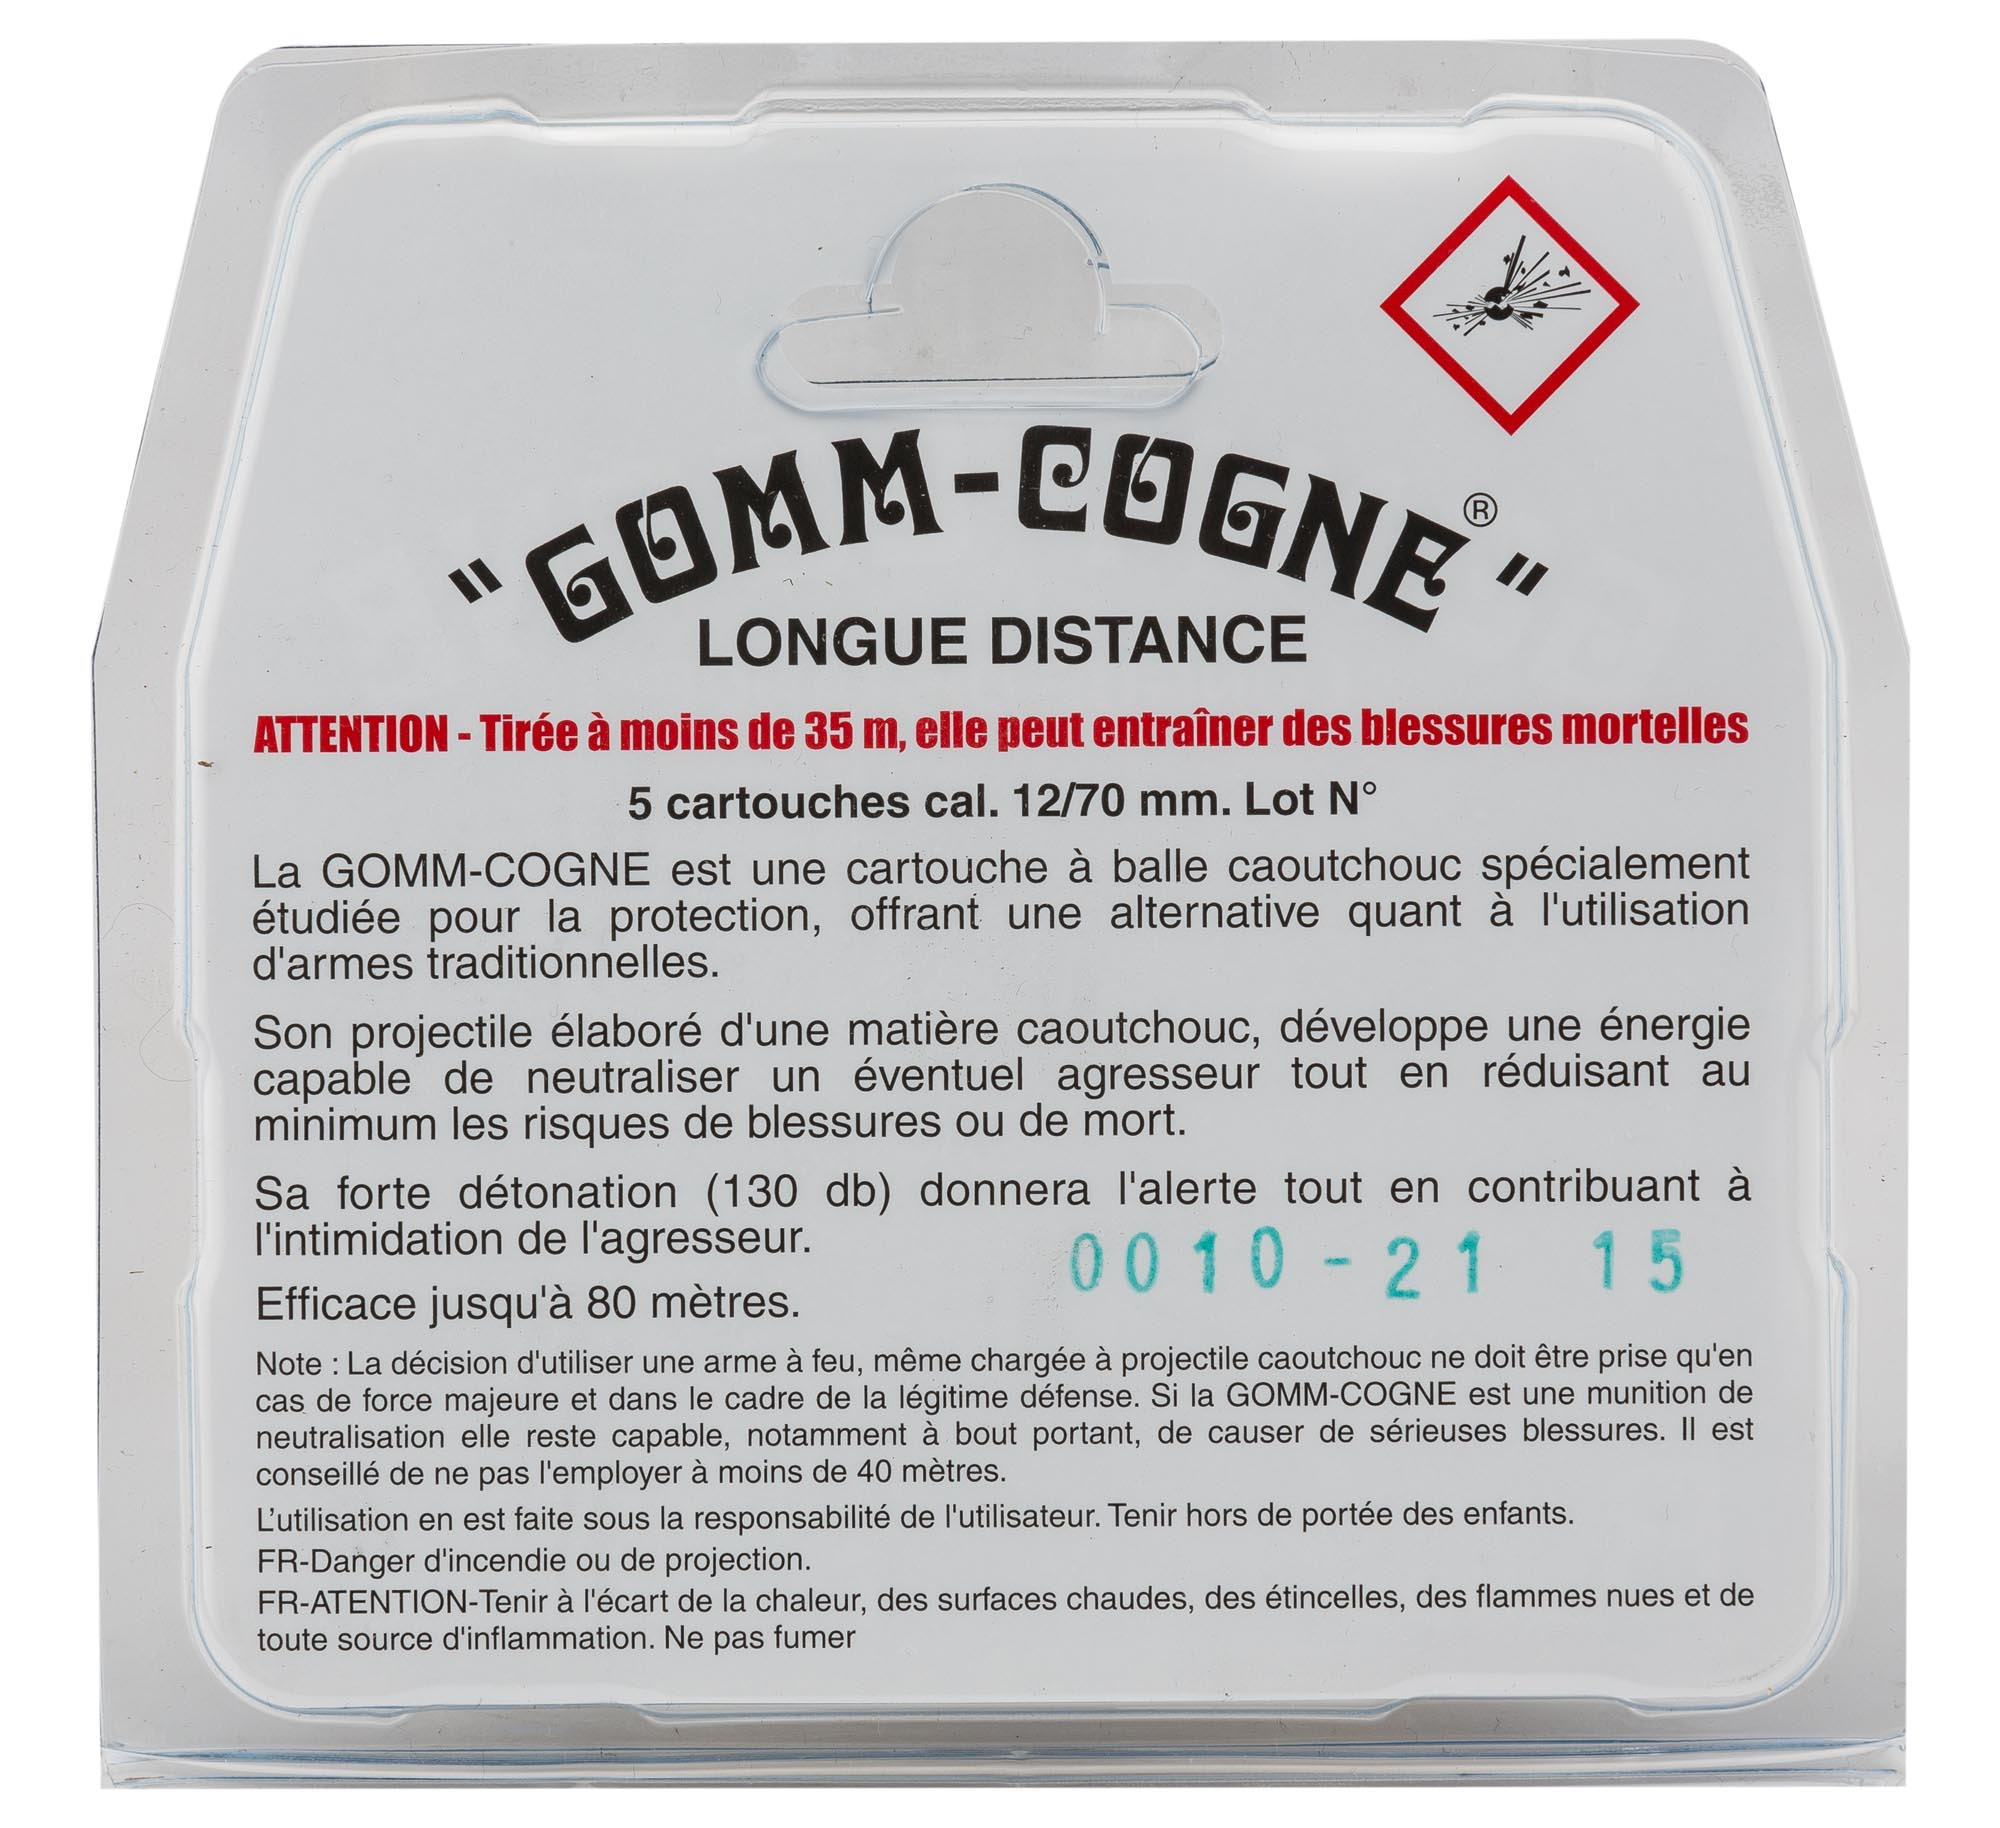 MD416-5-BALLES DE PROTECTION LONGUE DISTANCE - GOMM-COGNE - MD416